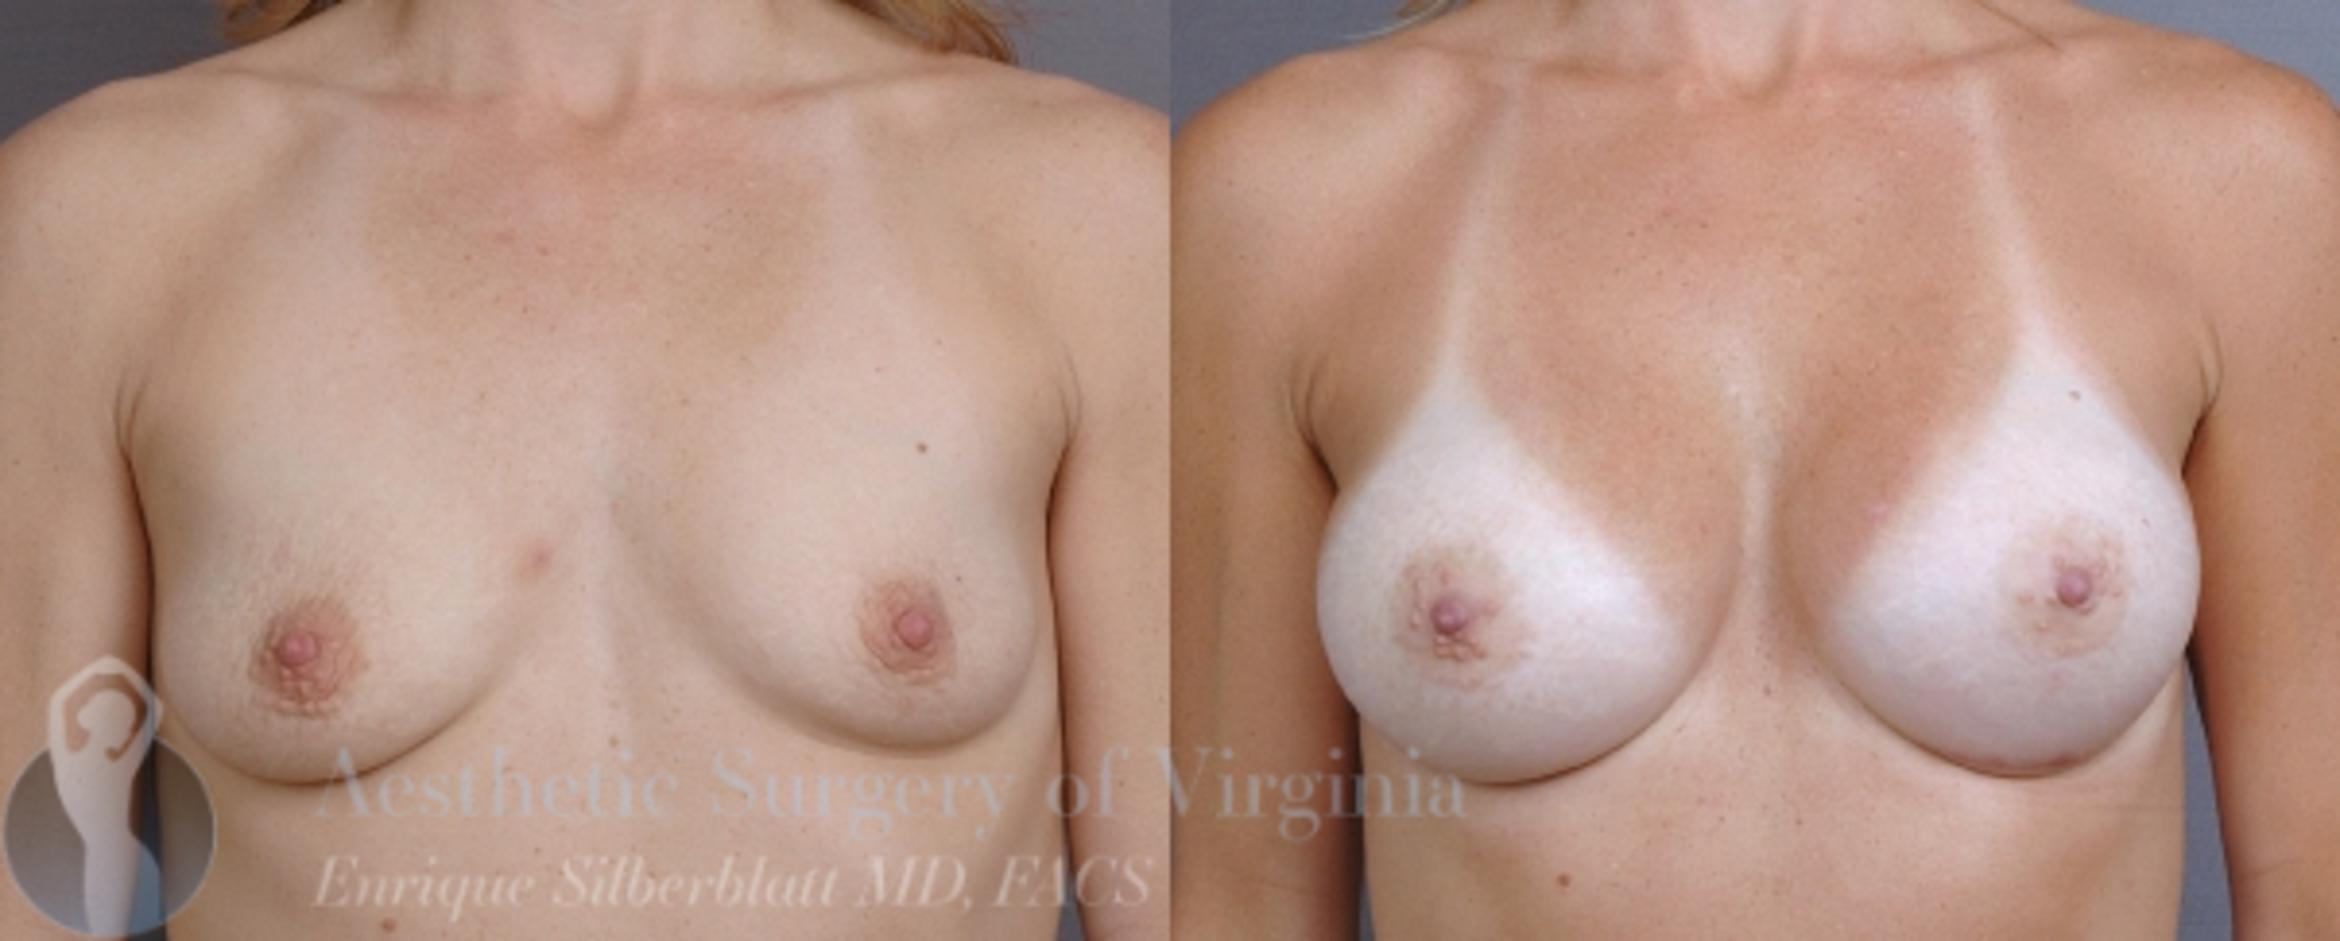 Breast Augmentation Case 5 Before & After View #1 | Roanoke, VA | Aesthetic Surgery of Virginia: Enrique Silberblatt, MD